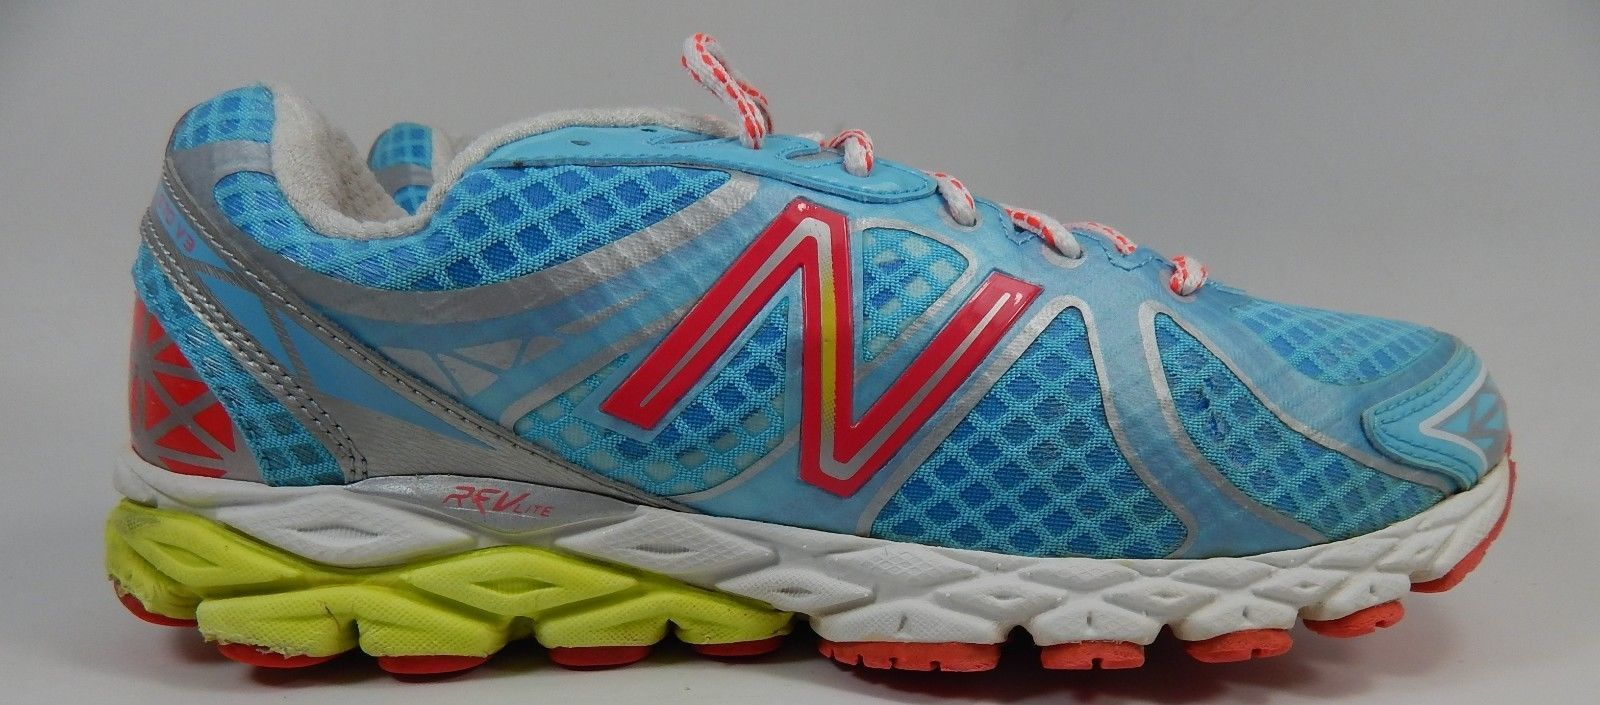 New Balance 870 v3 Size US 8 M (B) EU 39 Women's Running Shoes Blue Pink W870BS3